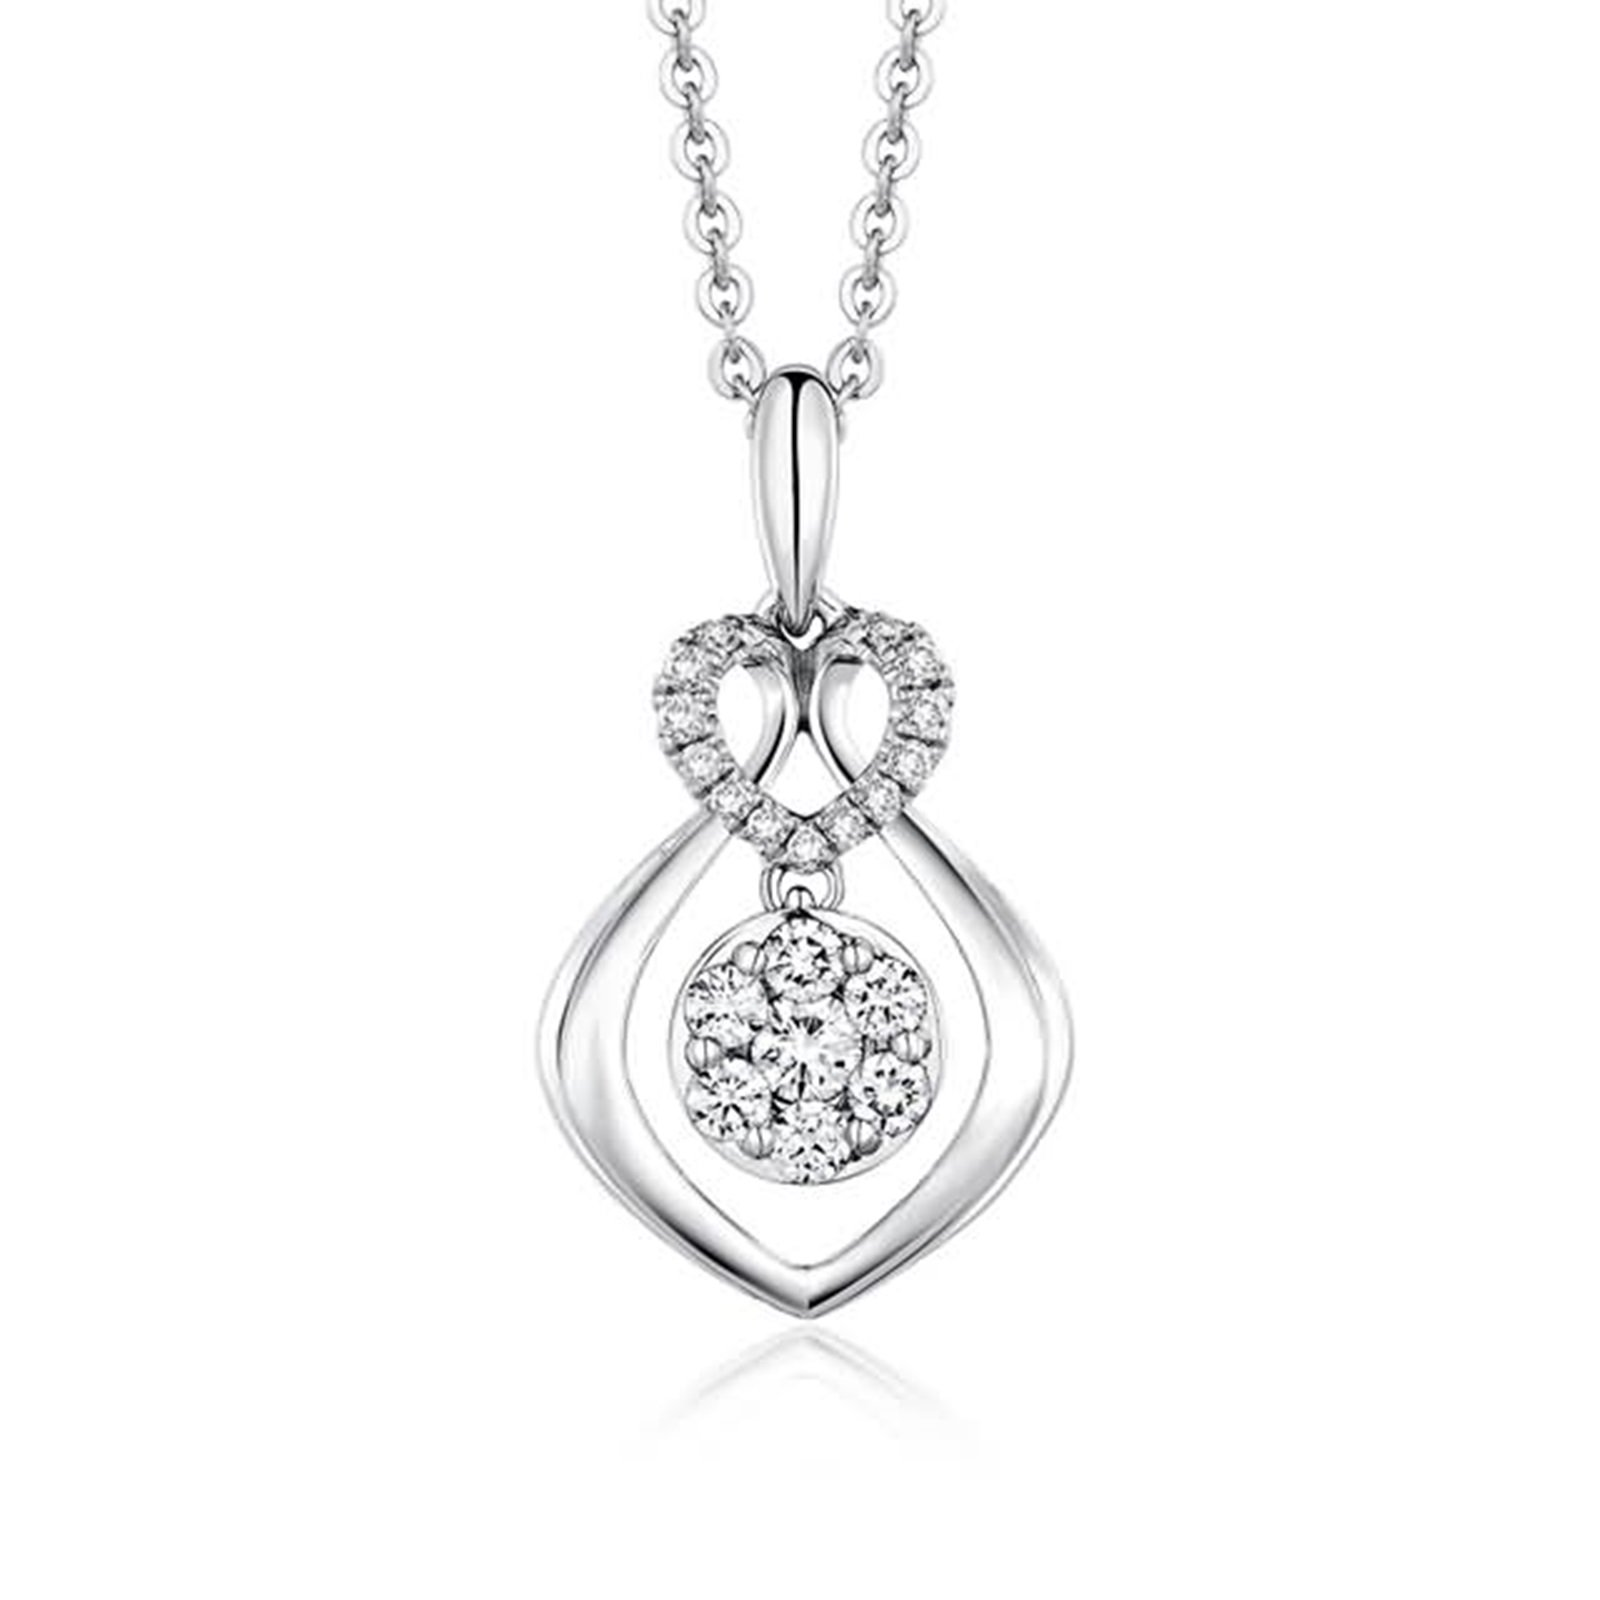 Beydodo Women Necklace,18k Real White Gold 1.22g ''Convergence of Love'' Heart Round Diamond Necklace